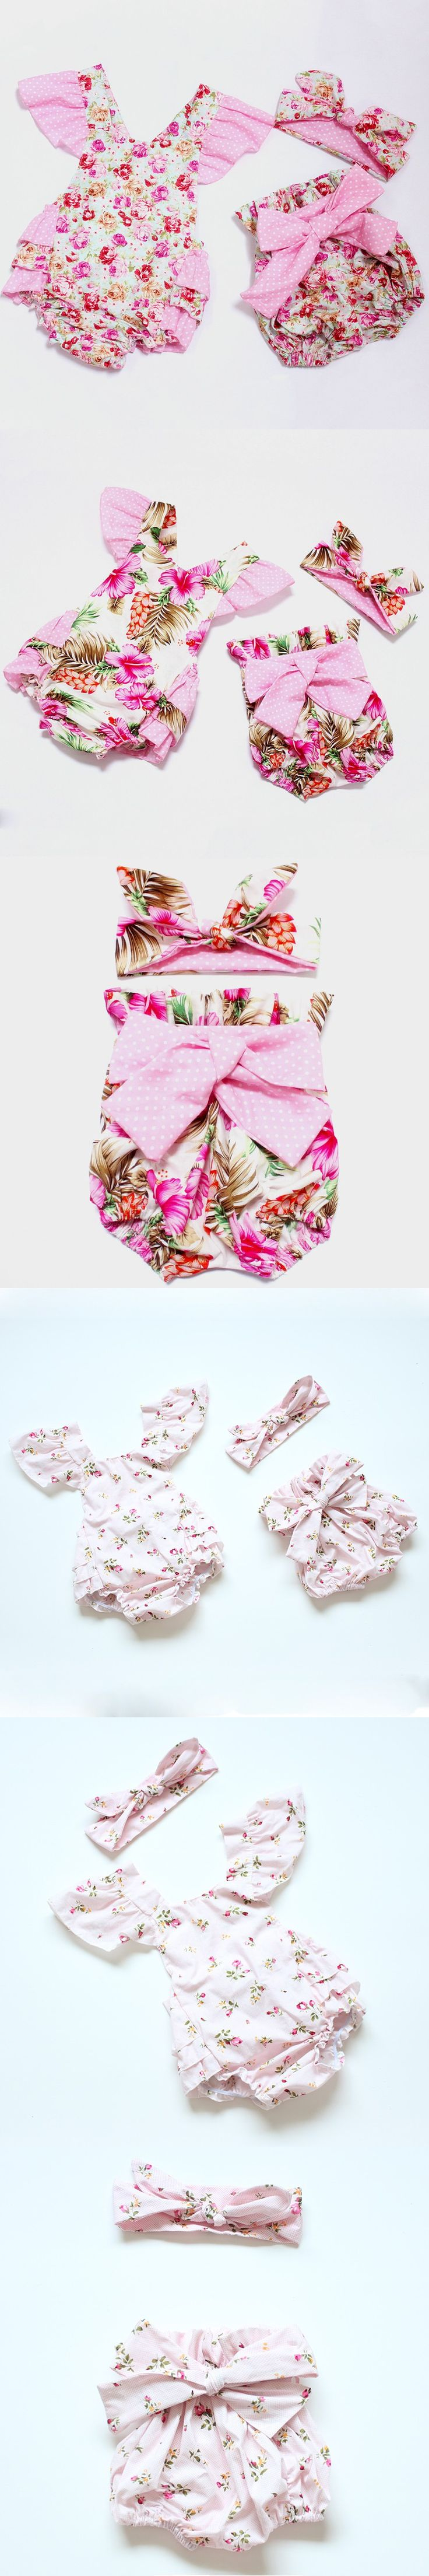 2016 new arrive boutique toddler romper set beautiful baby romper print flowers for baby,newborn baby girl clothes